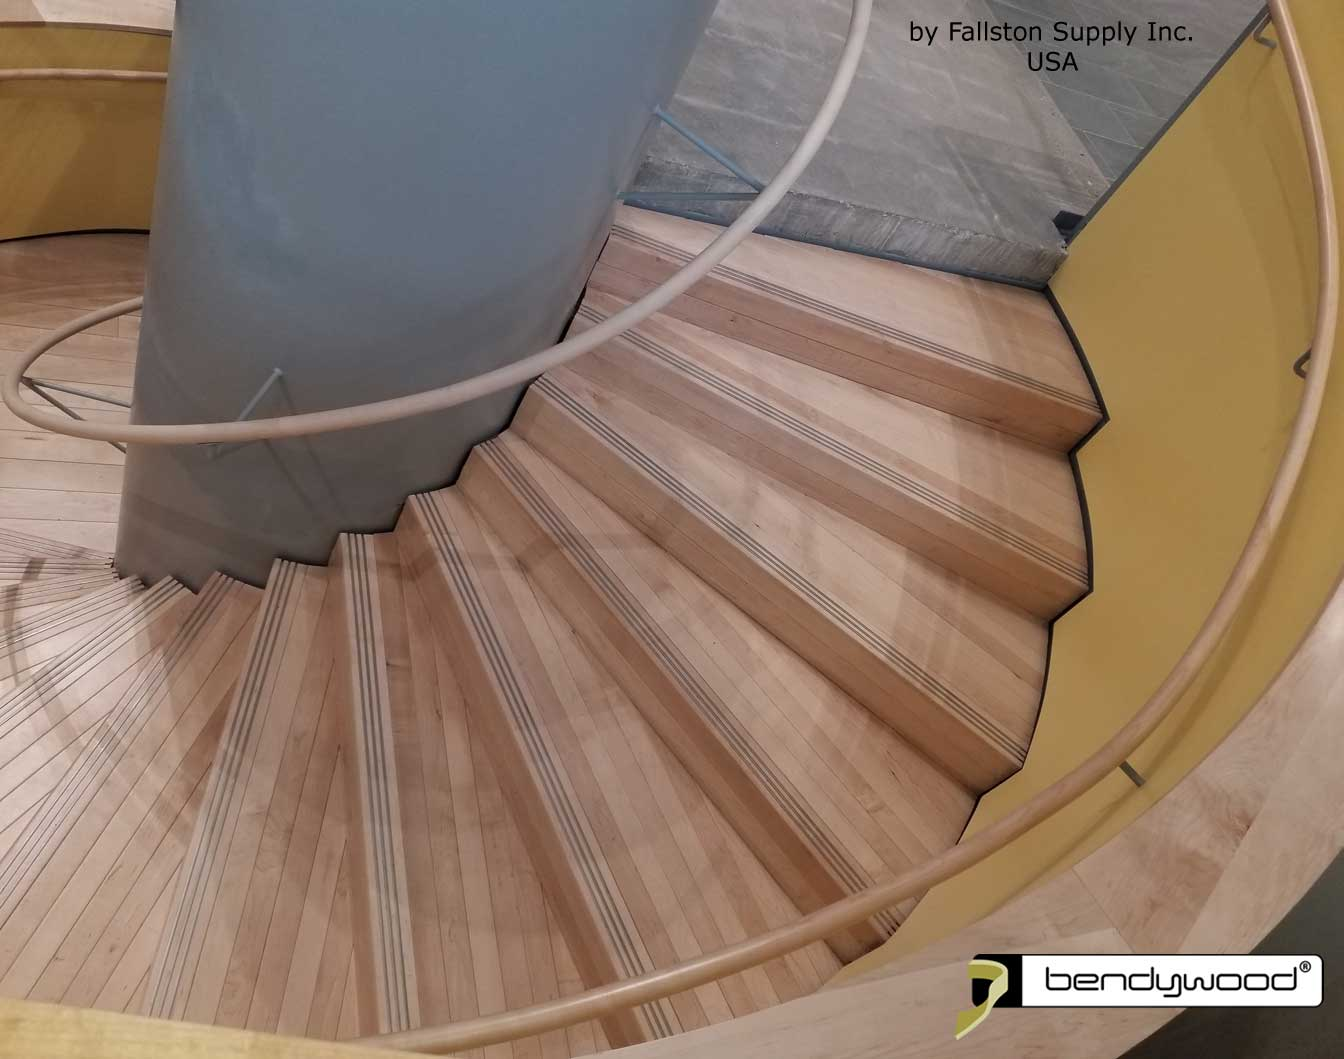 Bending wood Bendywood® - round wooden bending handrails for spiral staircase